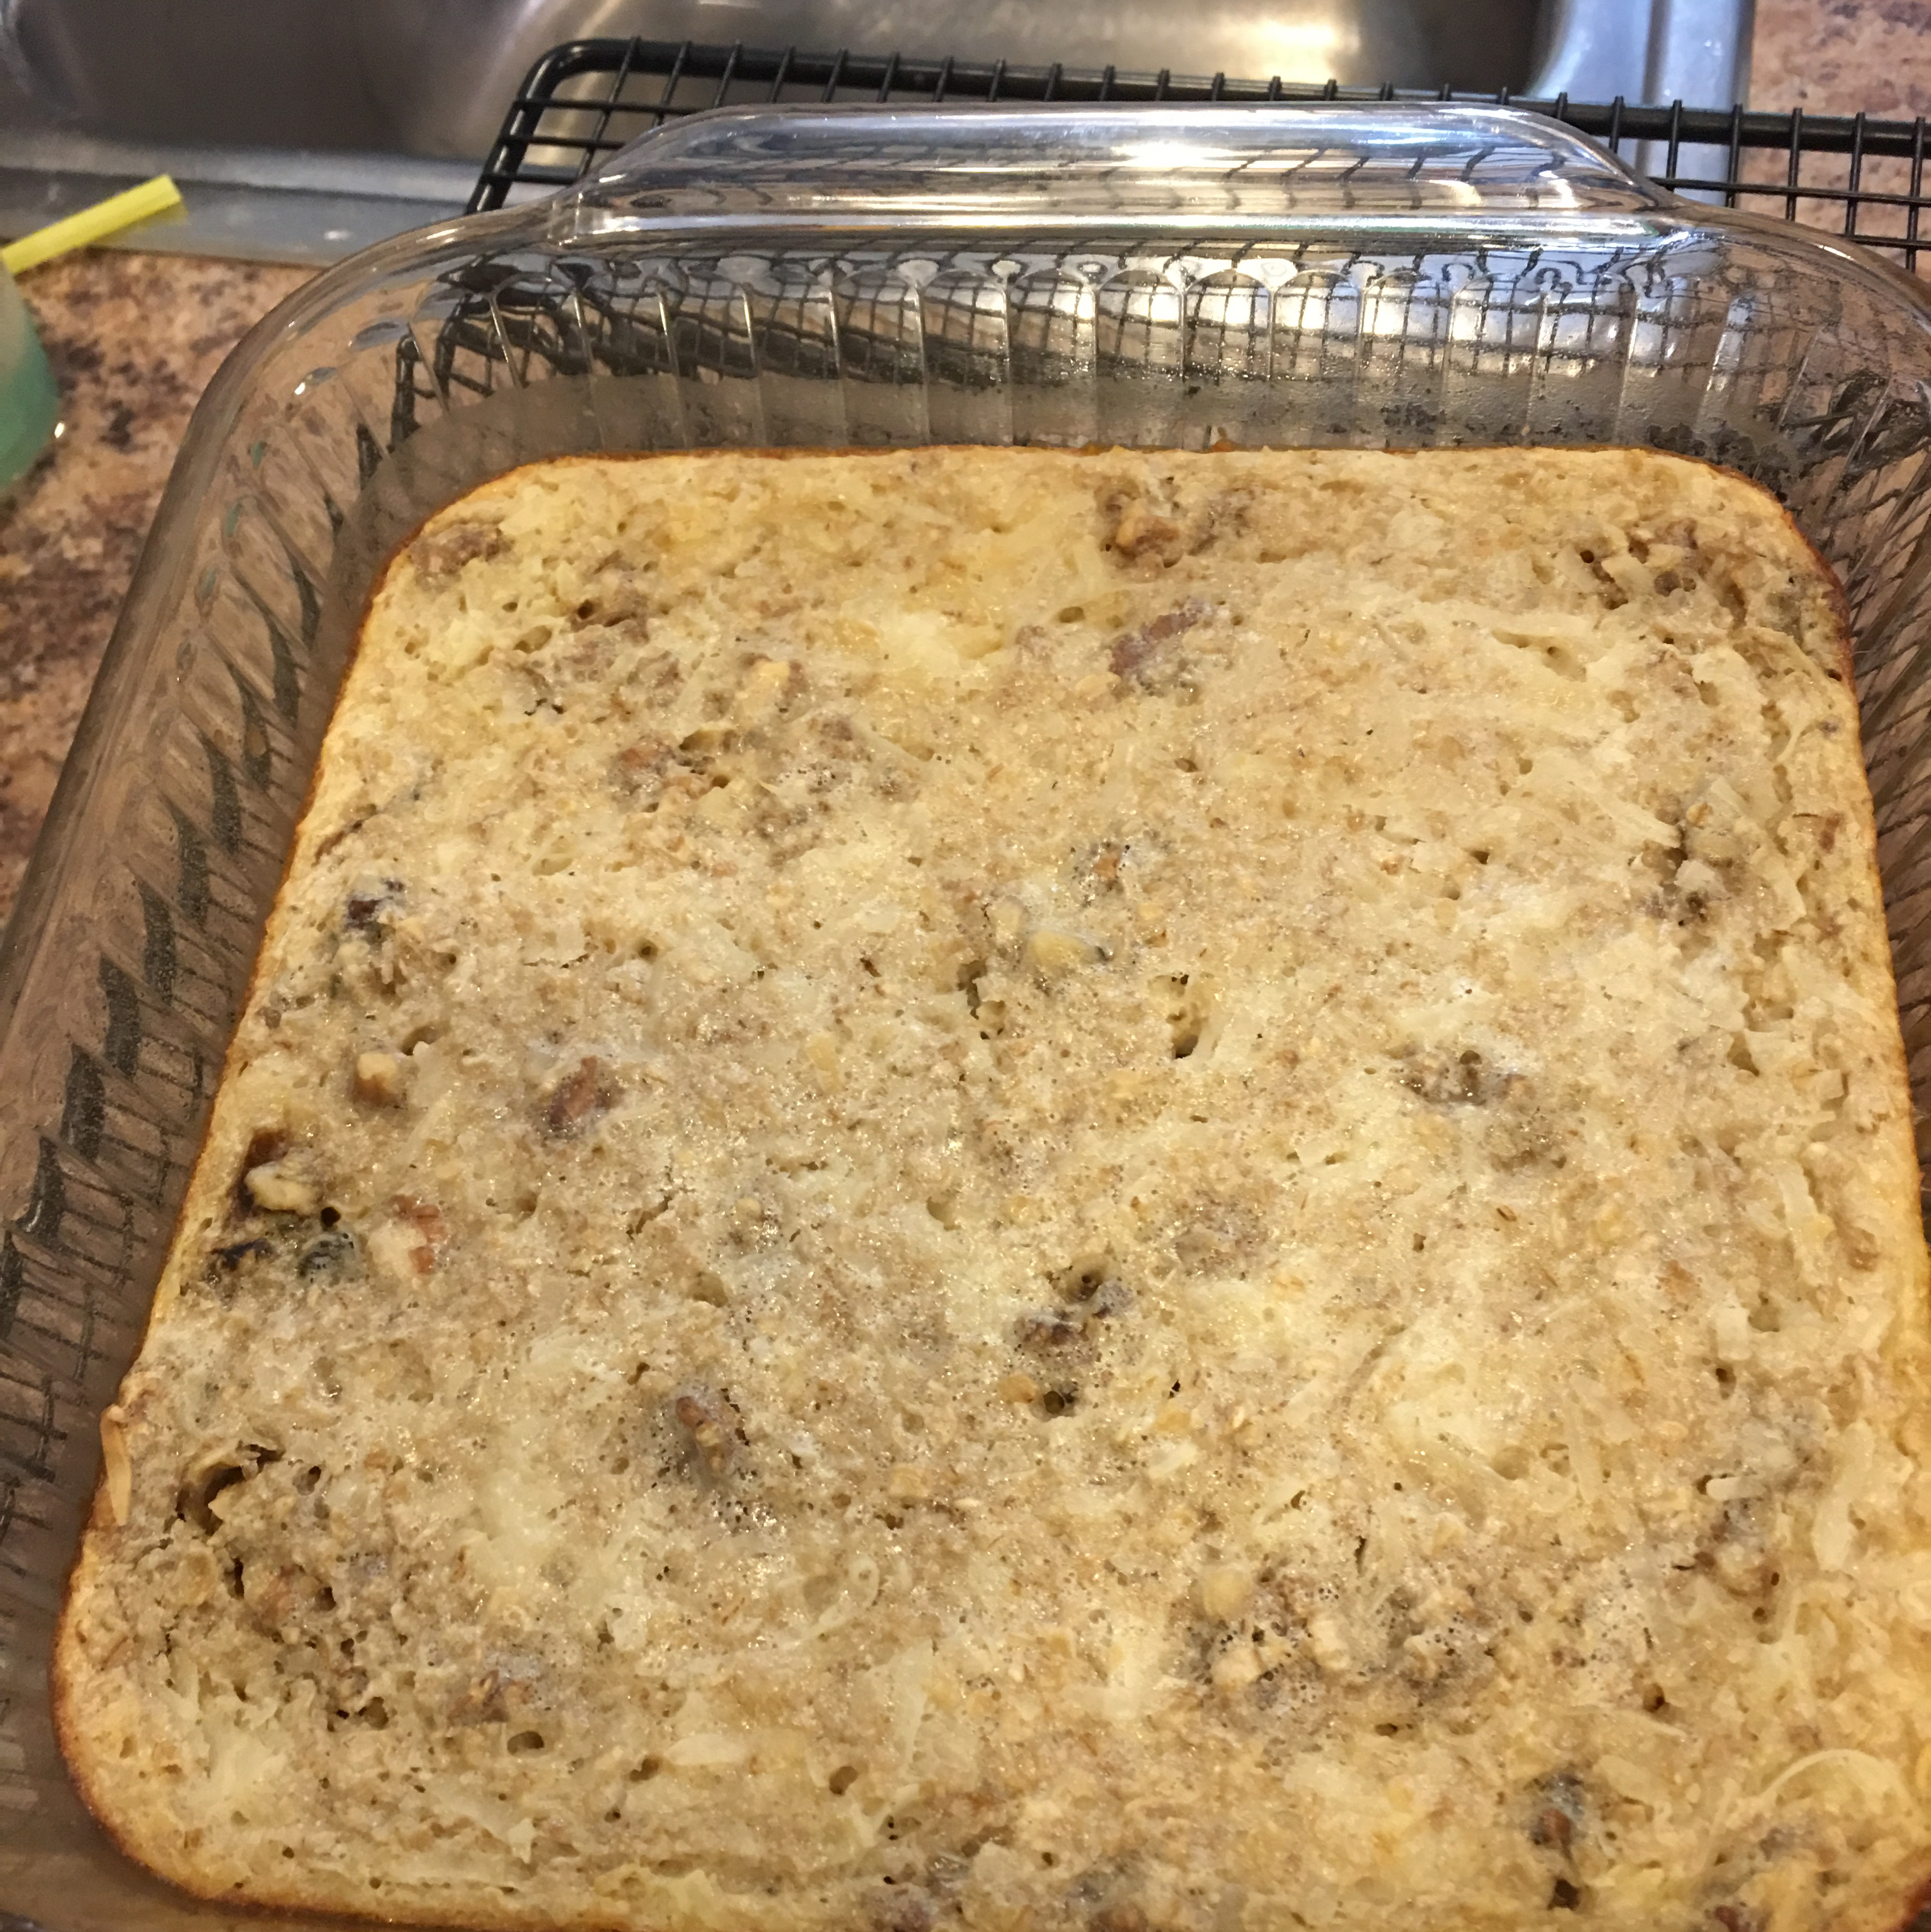 Bed and Breakfast Baked Oatmeal janice